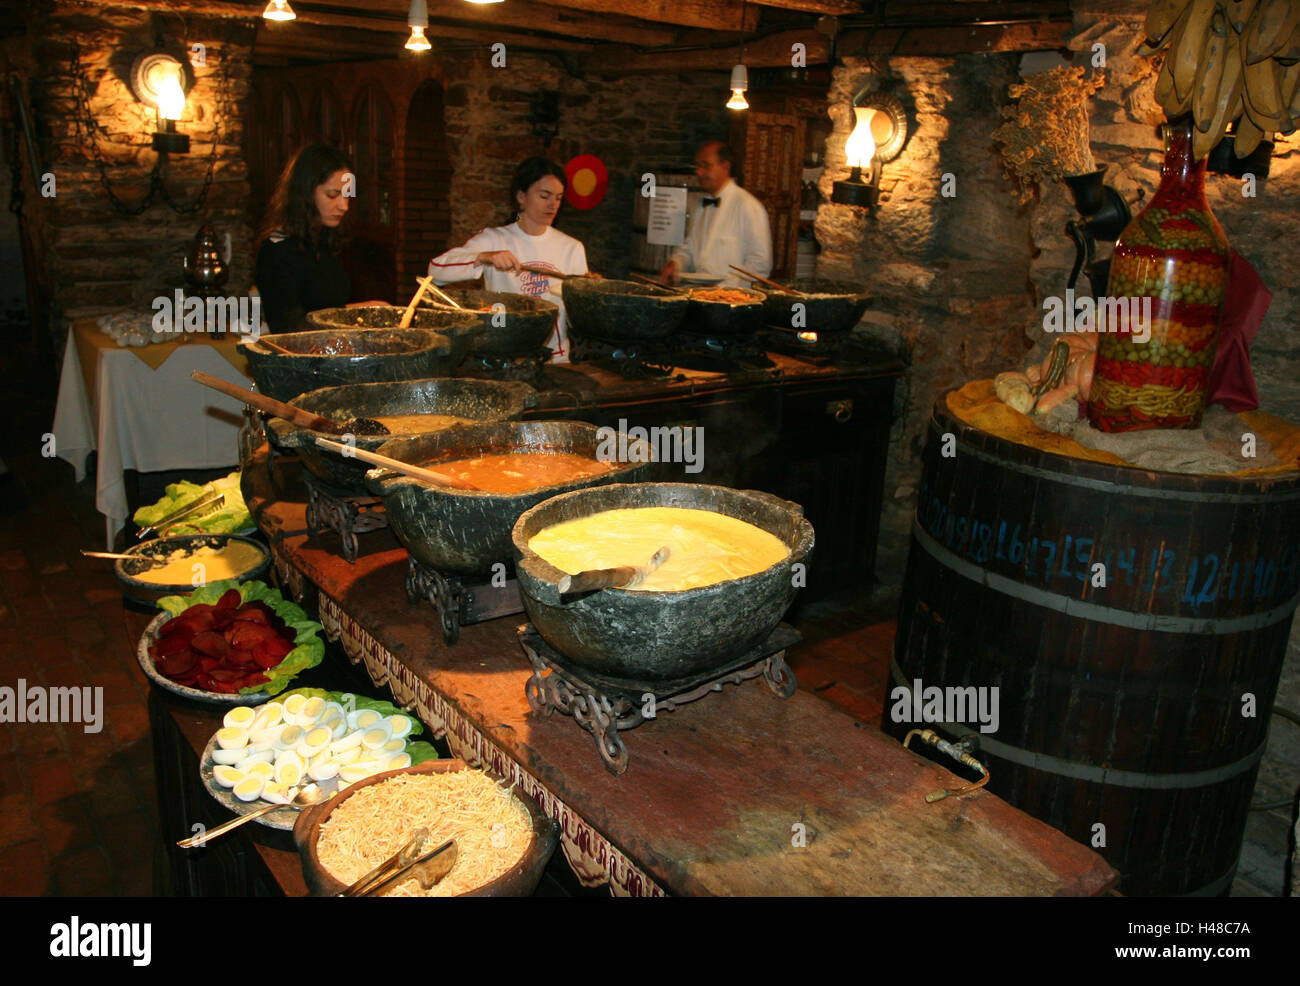 Brazil, Ouro Preto, food bar, counter, foods, guests, self-service, bar, restaurant, bar, peels, food, salad, specialities, - Stock Image